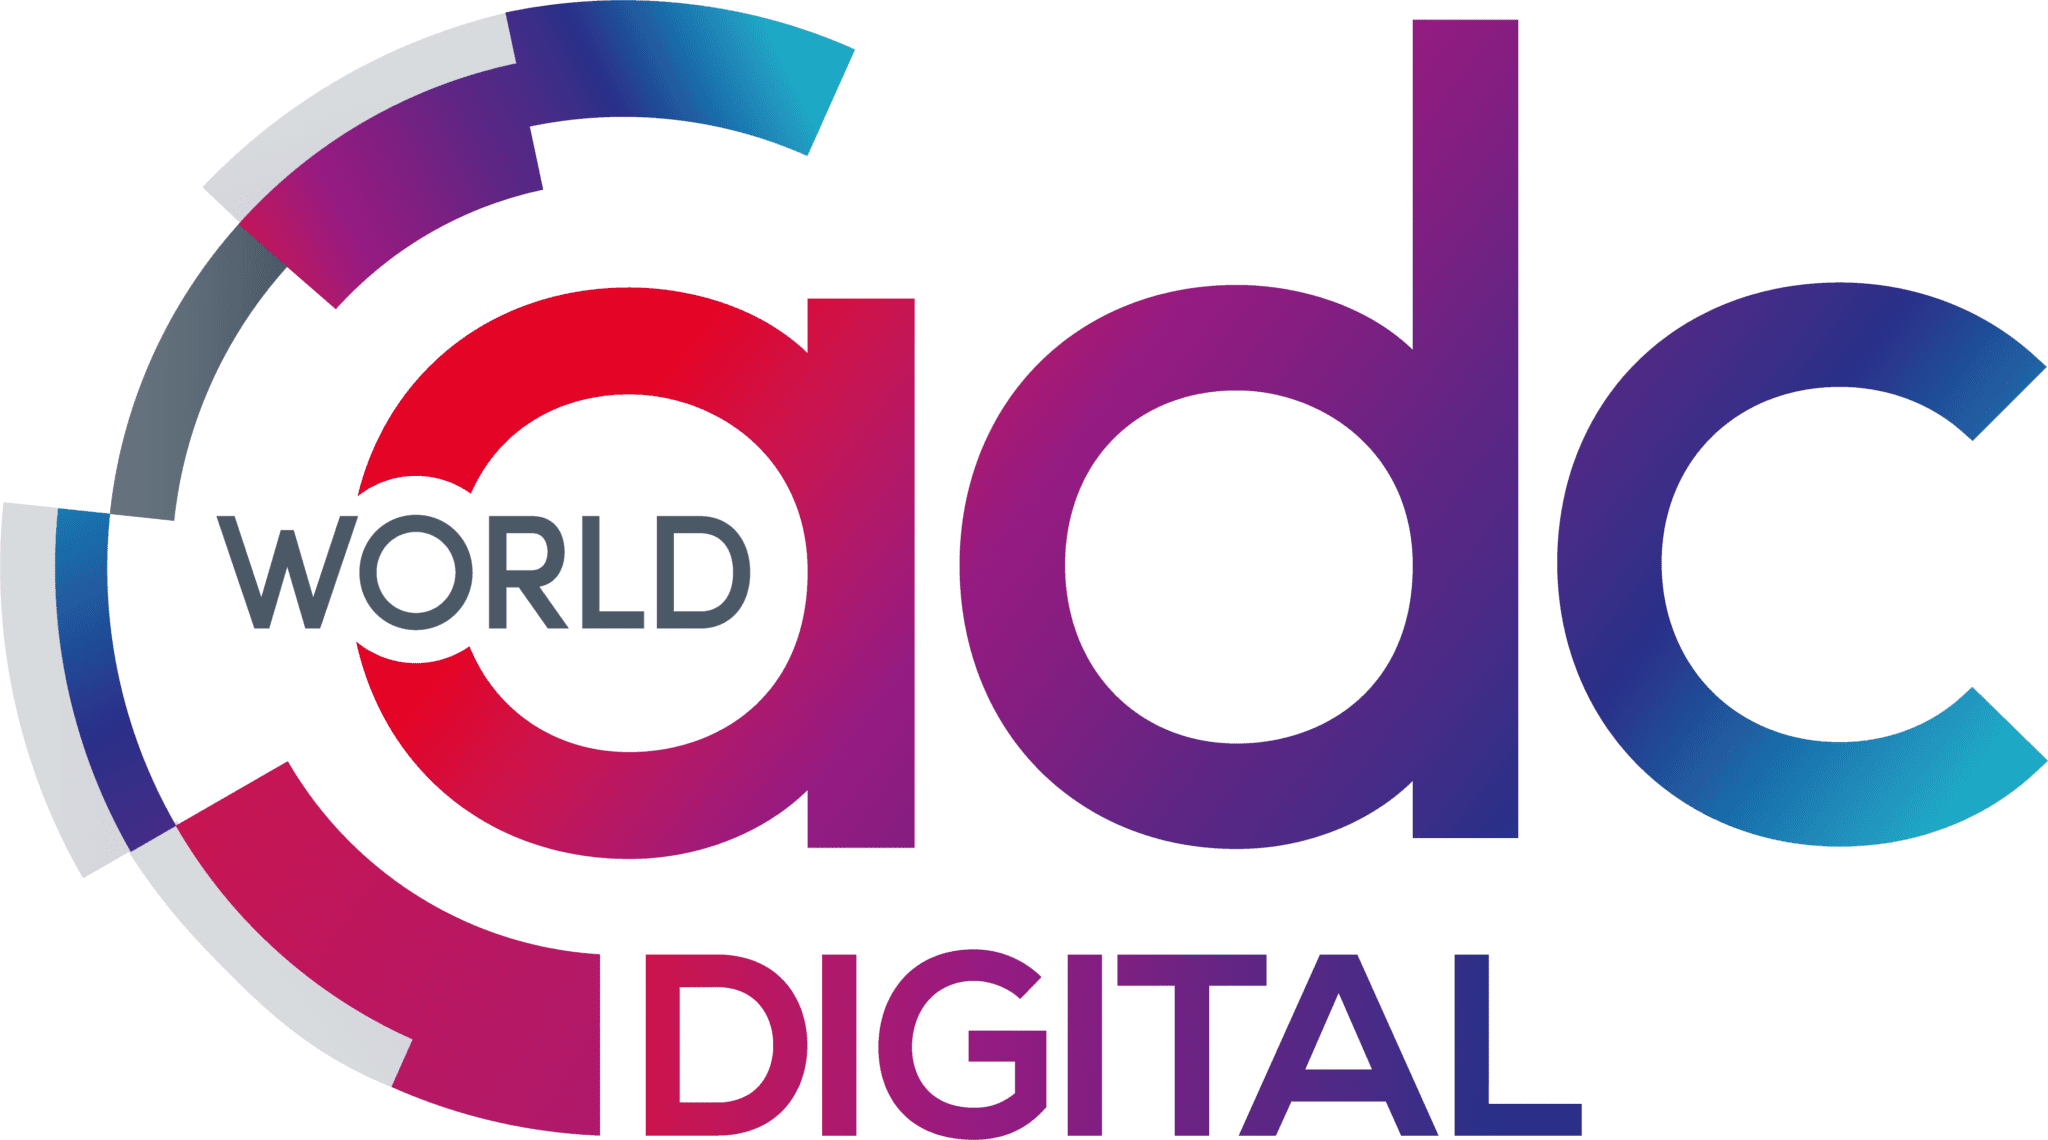 HW200616 World ADC Digital Logo